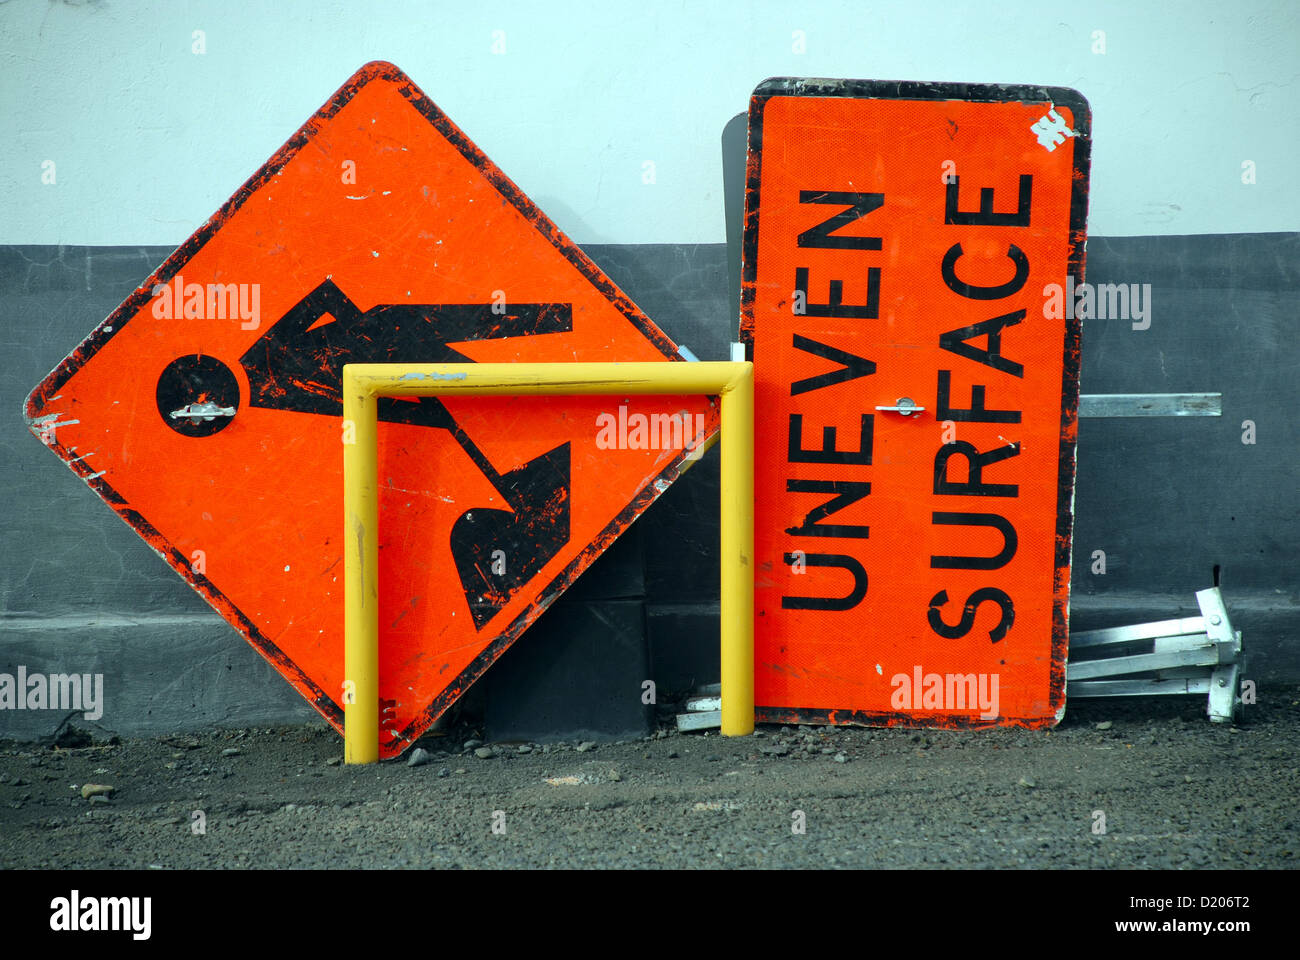 Humourous uneven surface sign - Stock Image